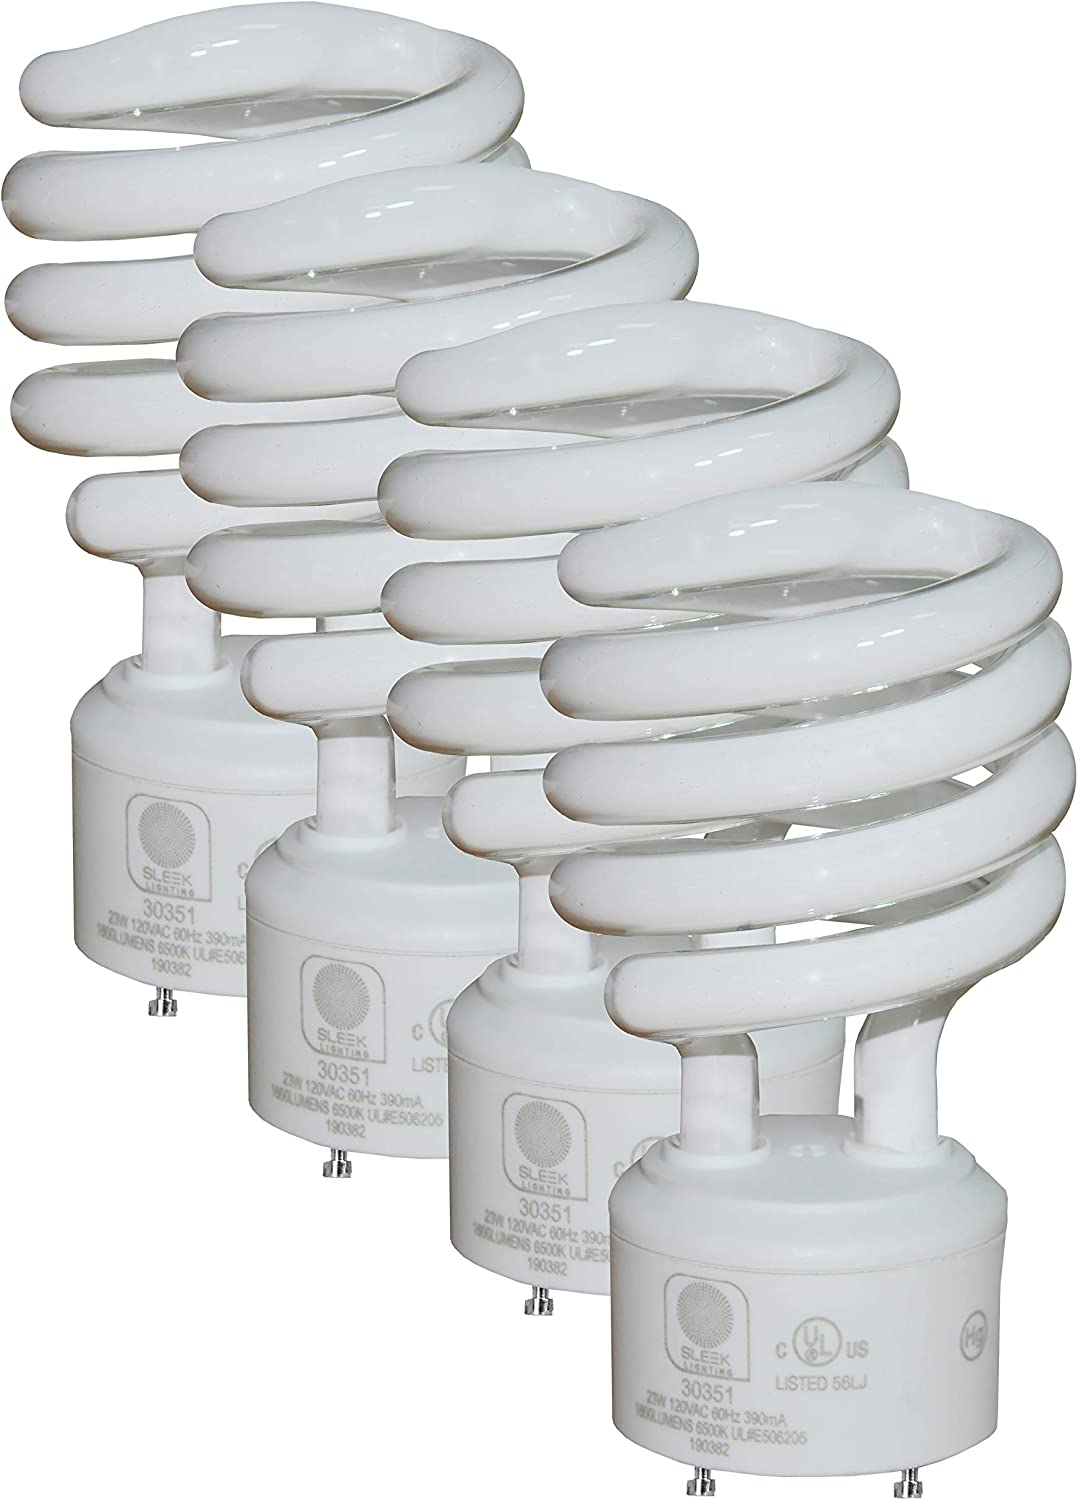 SleekLighting - GU24 23Watt 2 Prong Light Bulbs- UL approved-120v 60Hz - Mini Twist Lock Spiral -Self Ballasted CFL Fluorescent Bulbs- 4200K 1600lm Cool White 4pack (100 Watt Equivalent)